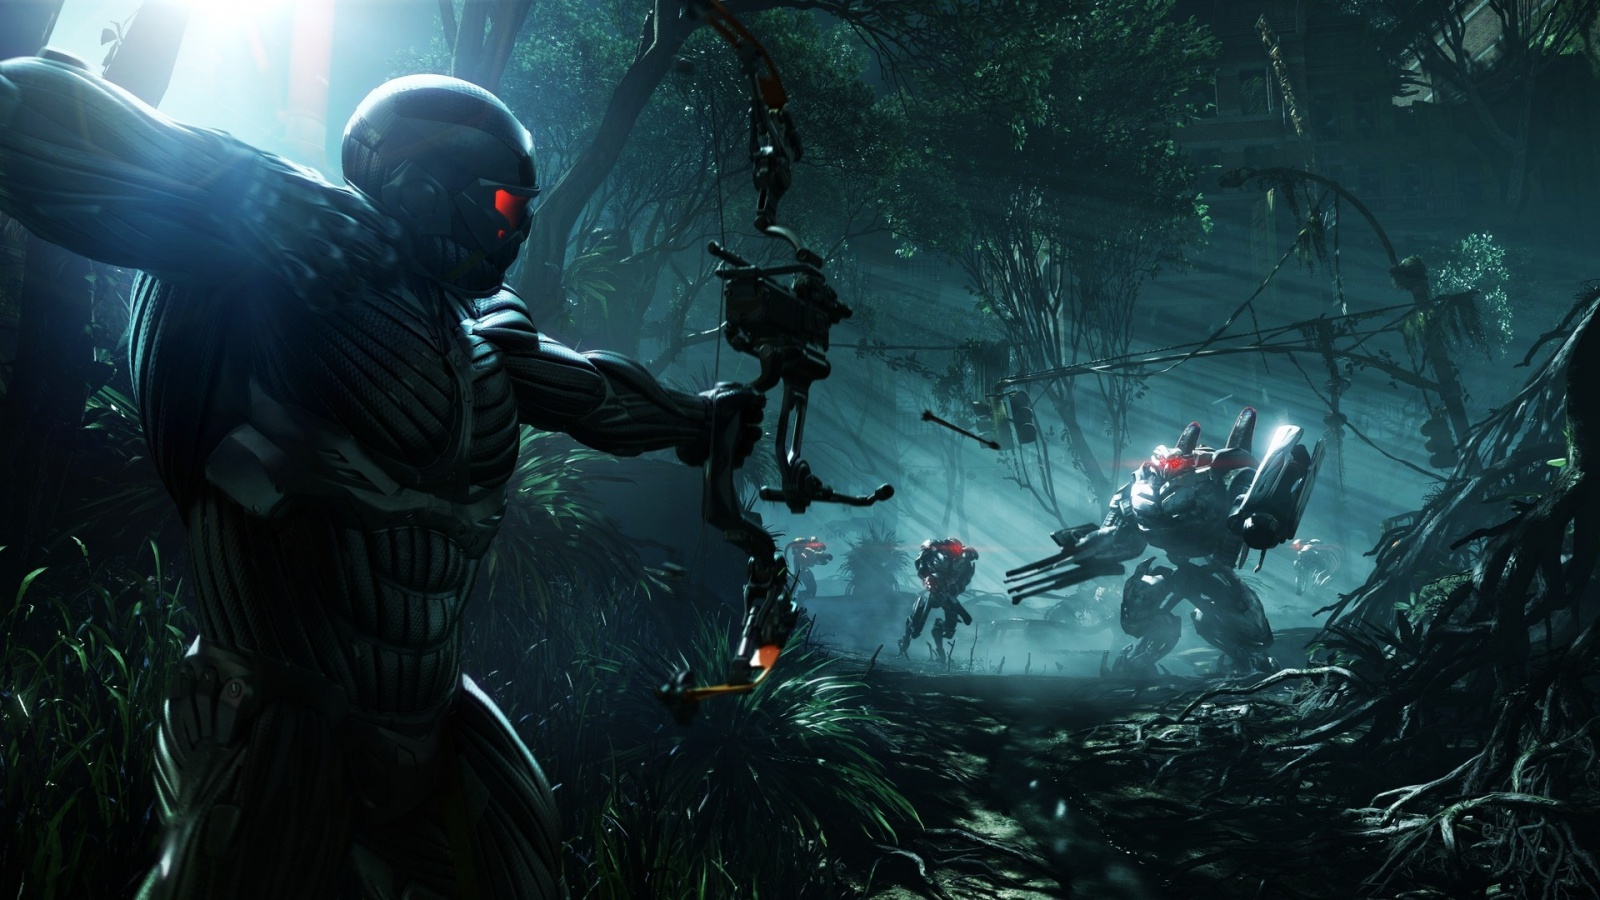 download Crysis 3 wallpaper desktop background in 1600x900 1600x900